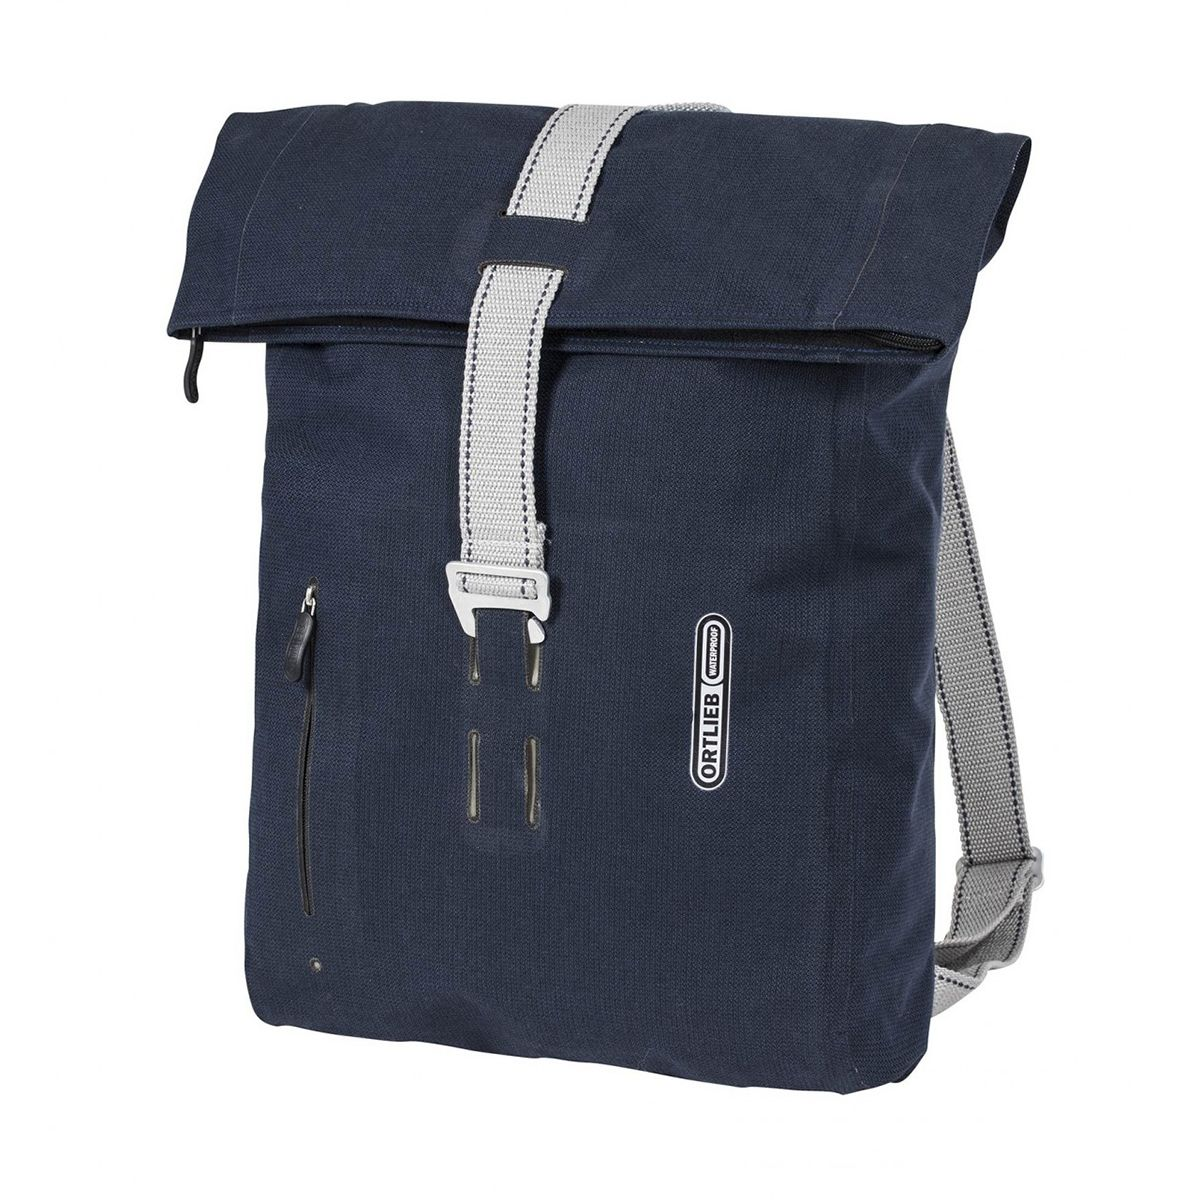 URBAN DAYPACK 20 backpack